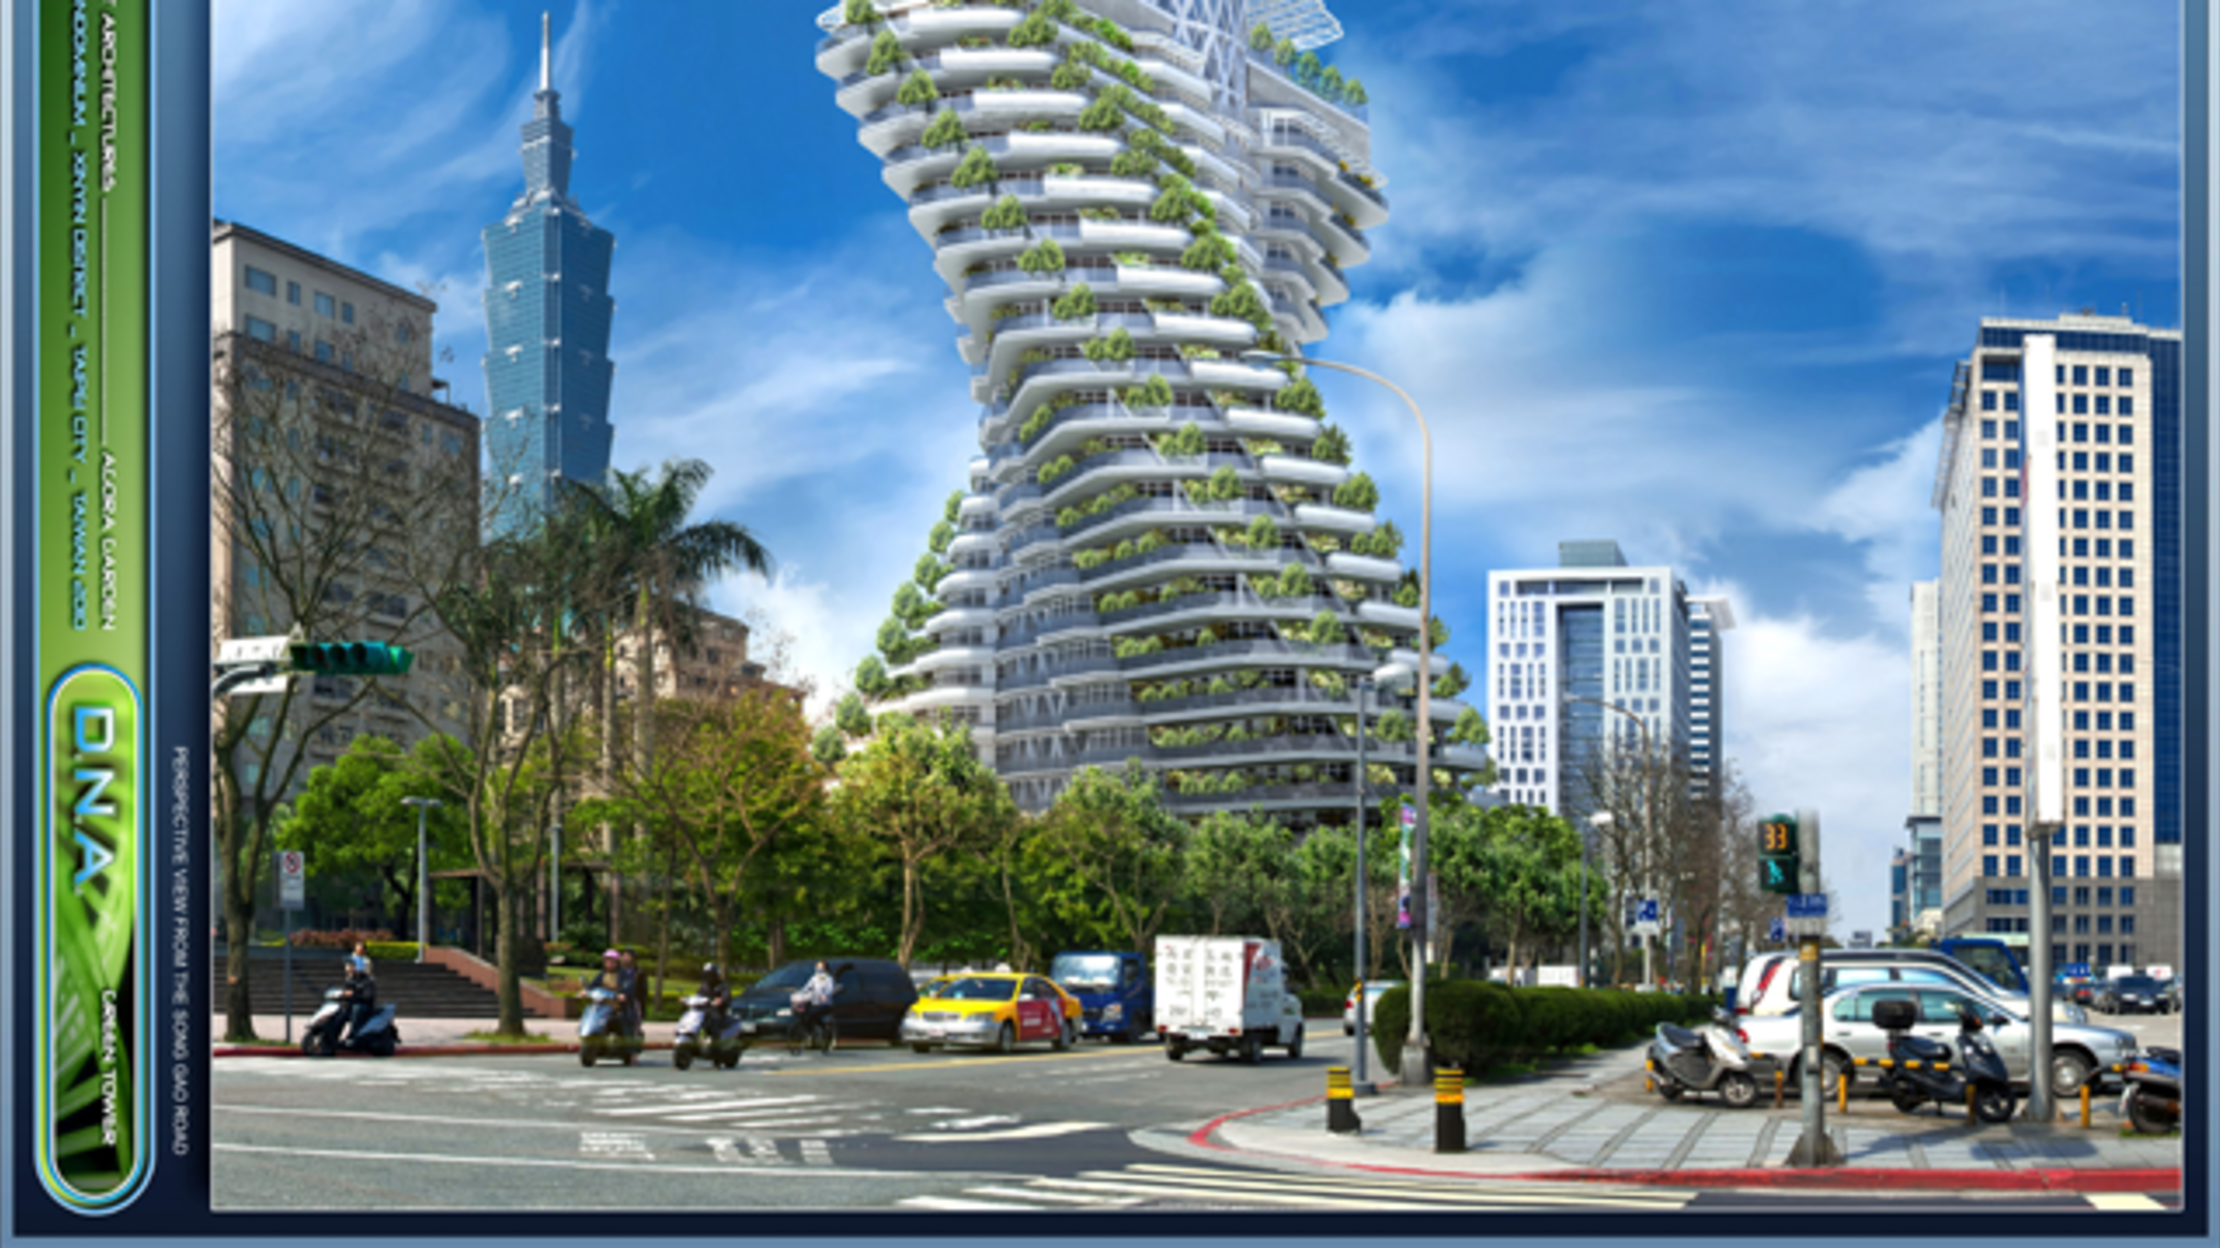 10 Insane Buildings Currently Under Construction Mental Floss